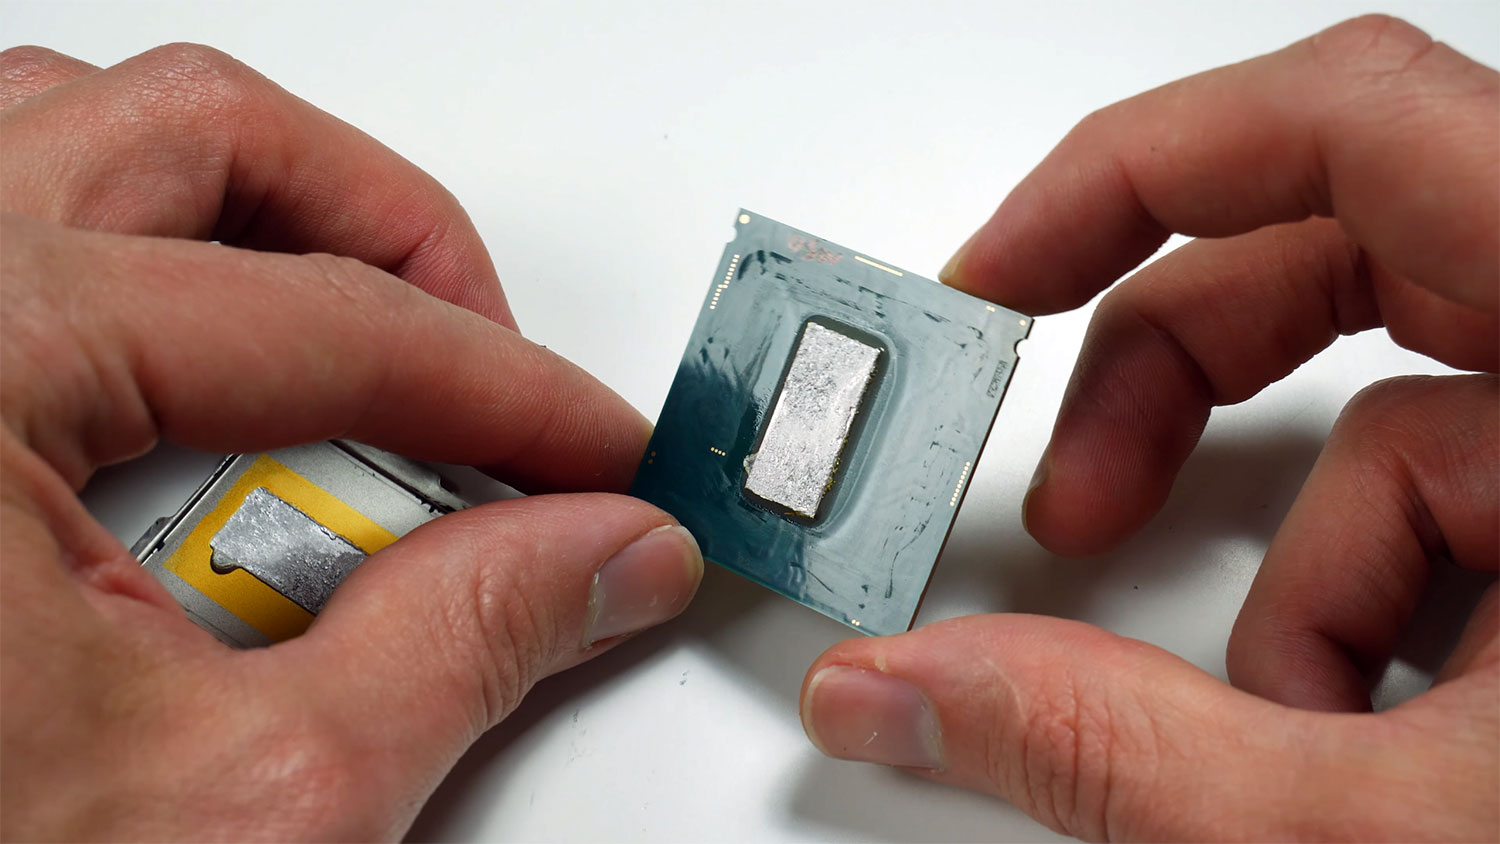 Watch a professional overclocker delid and sand down an